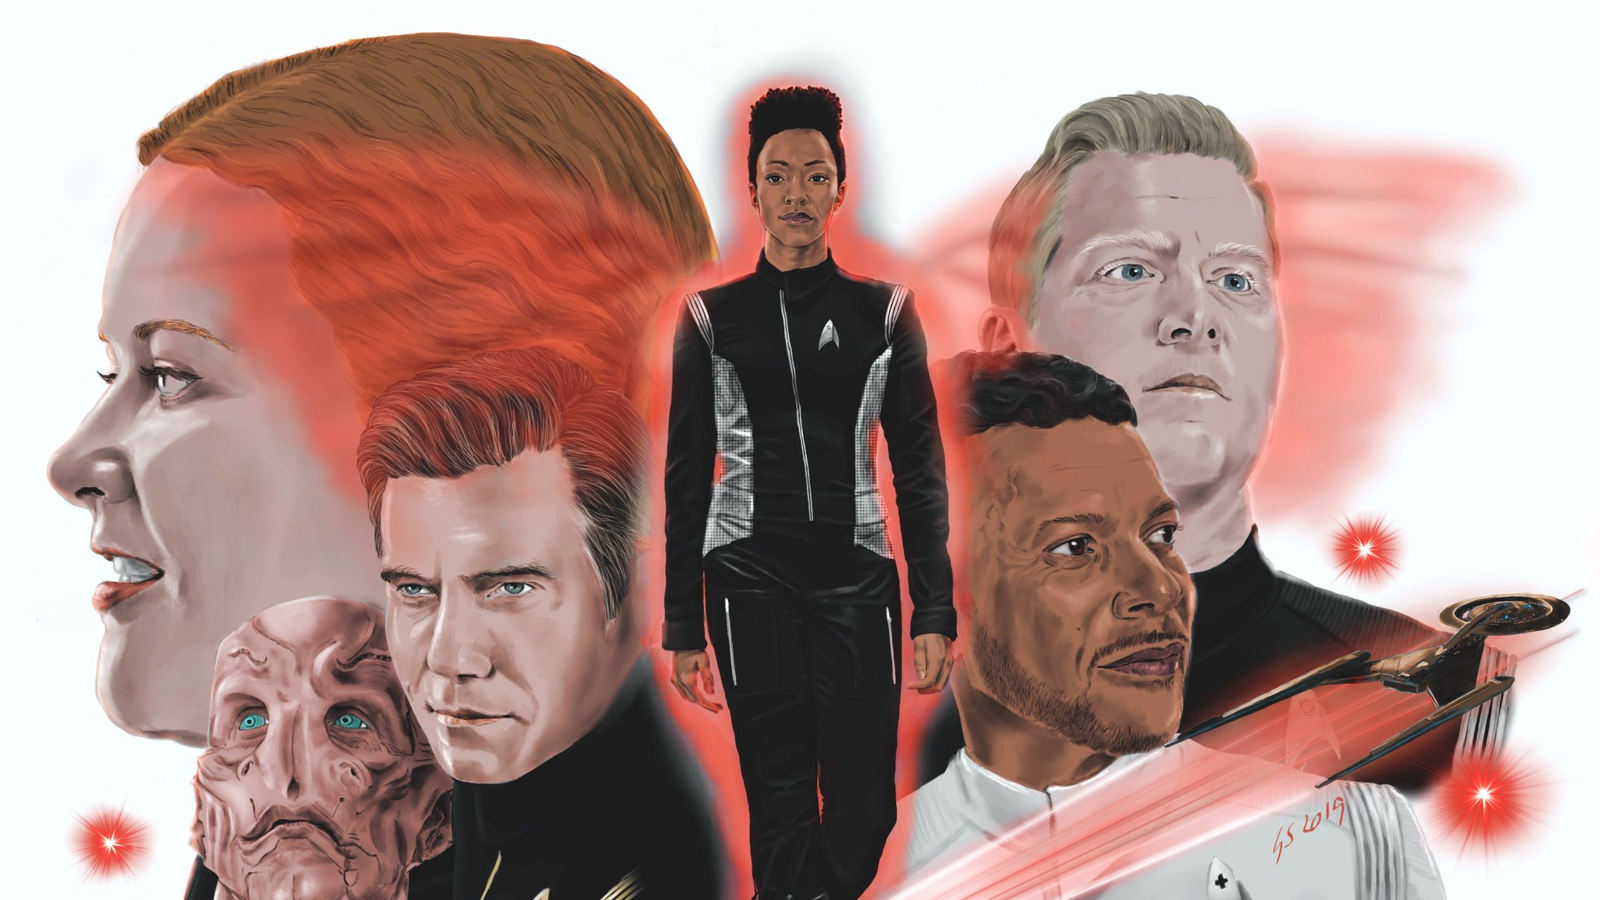 Star Trek: Discovery Inspired This Fan to Produce Some Amazing Sketches and Paintings